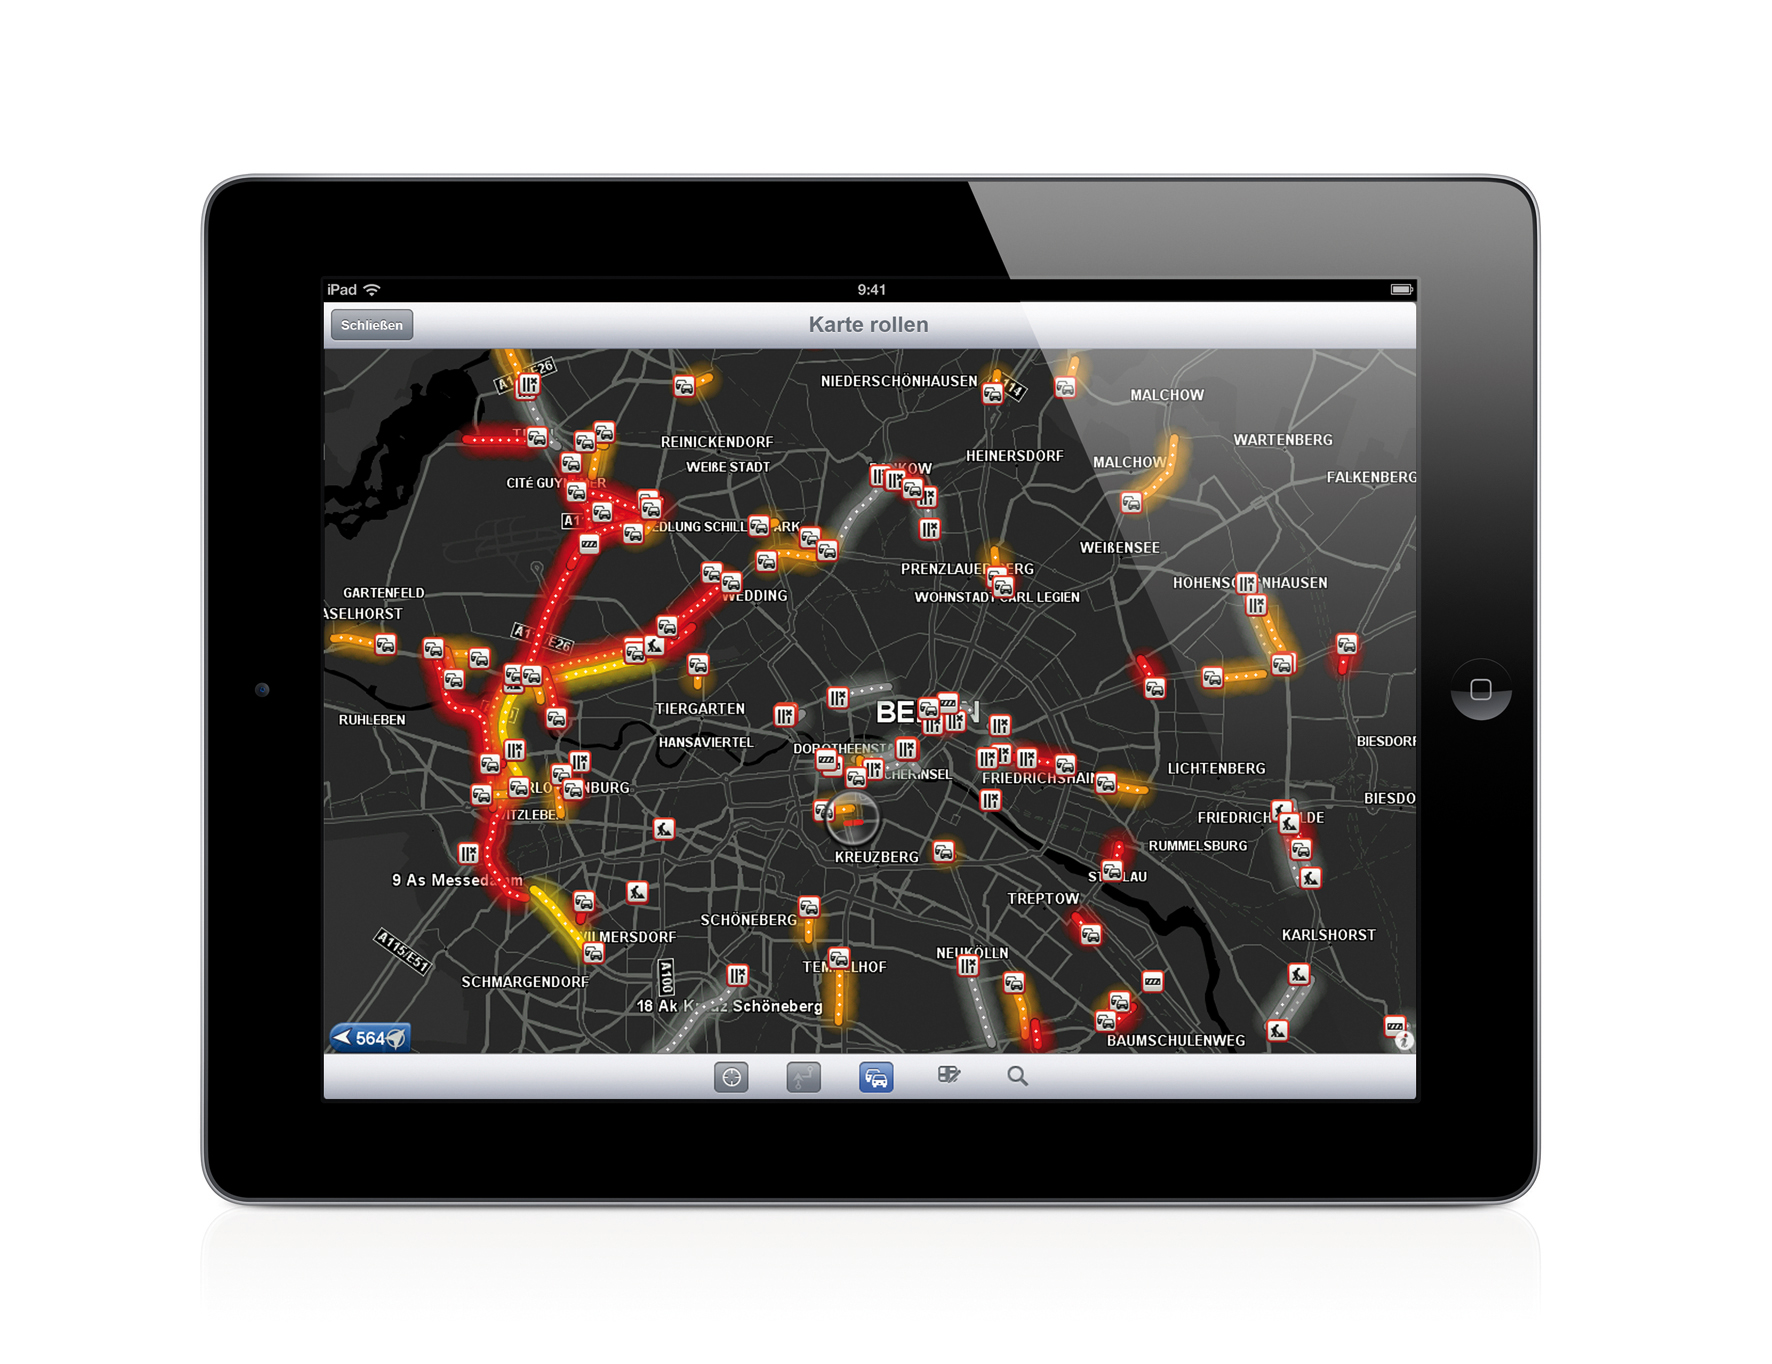 TomTom App für iPhone/iPad